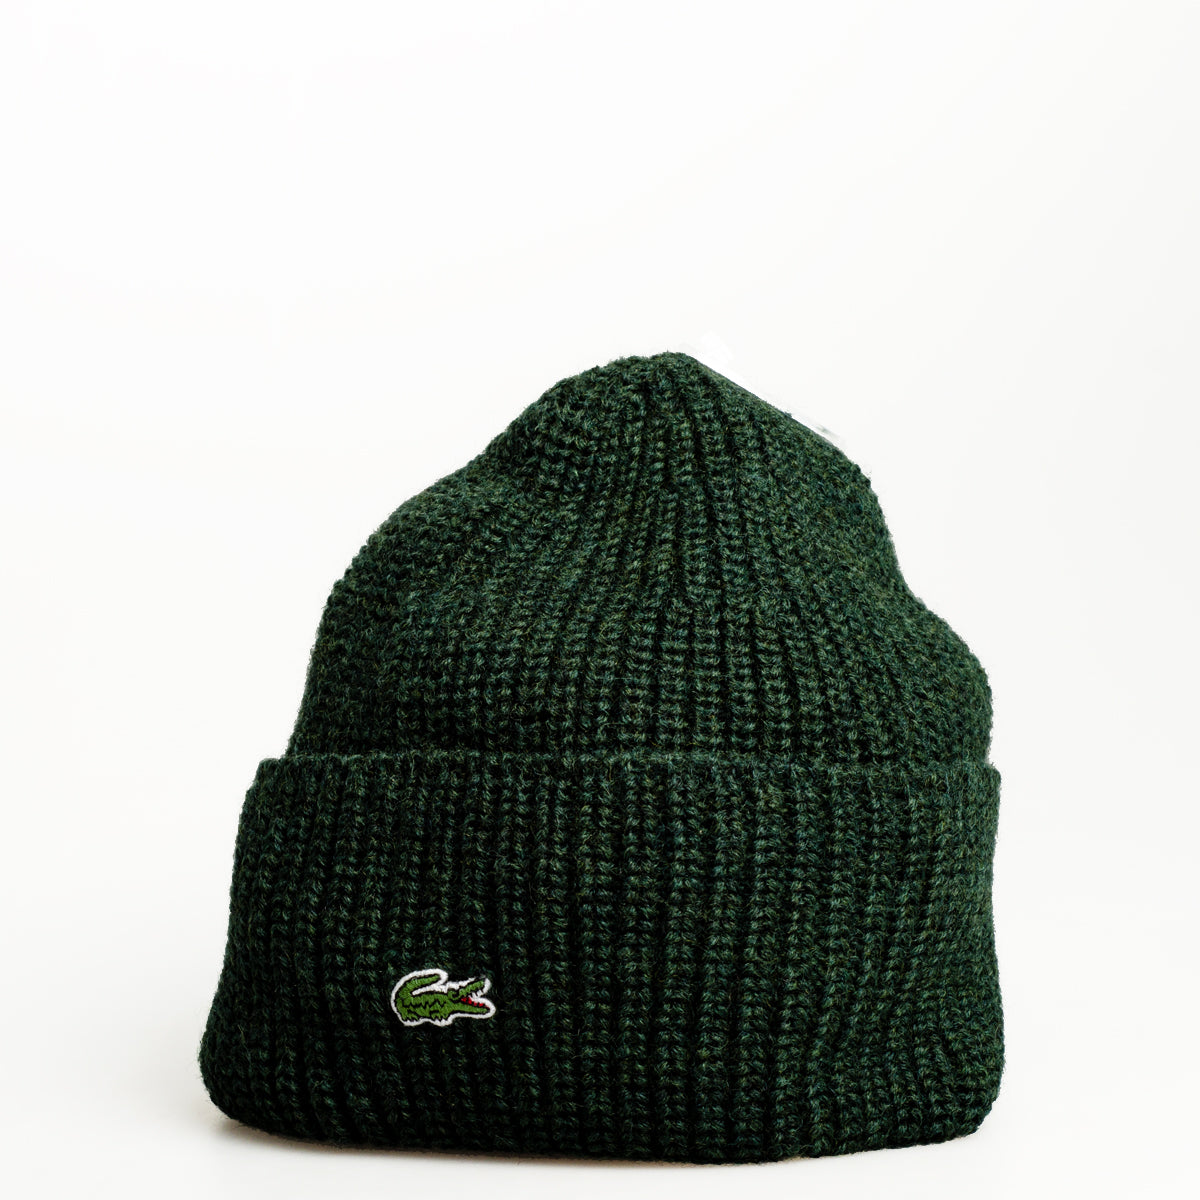 e940651eeab Men s Lacoste Turned Edge Ribbed Wool Beanie Forester Green ...